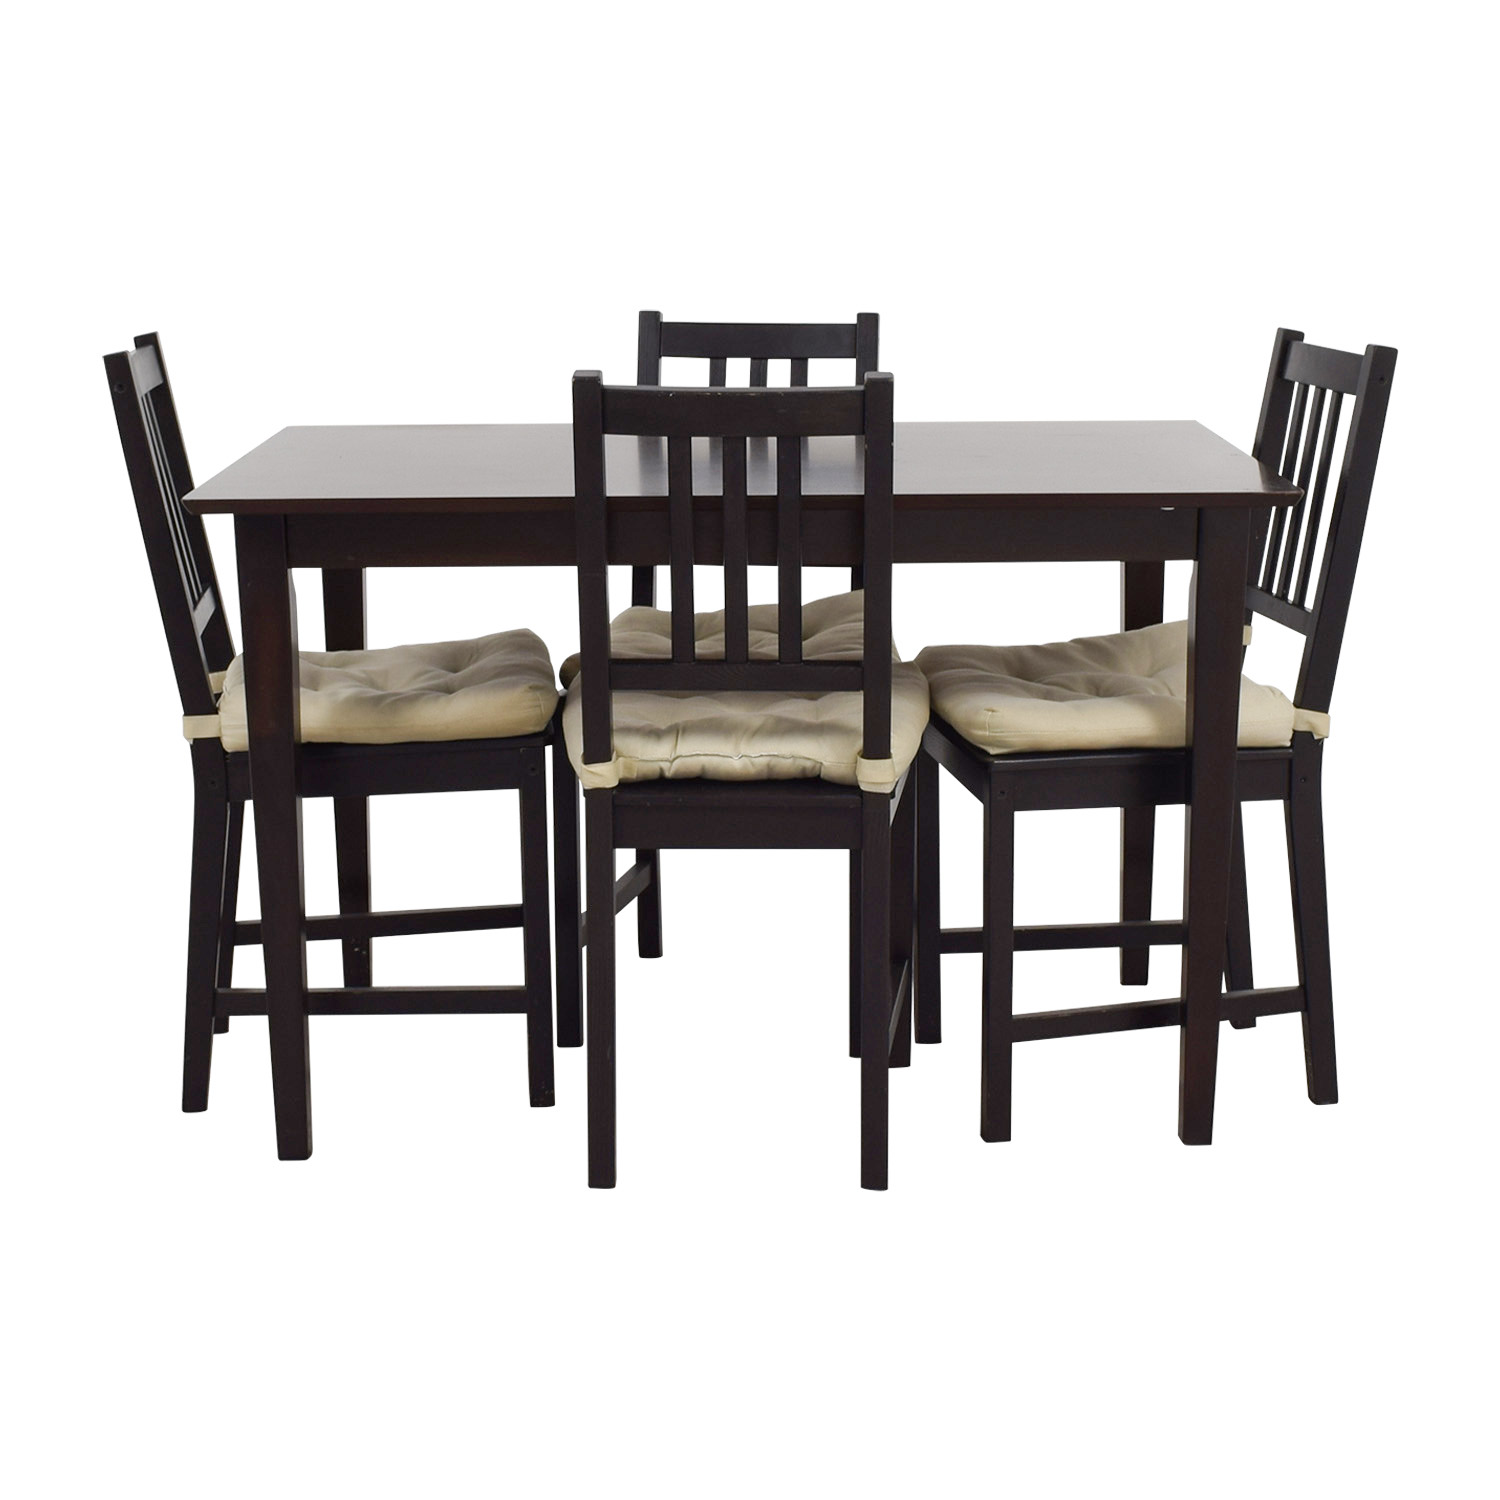 63 Off Ikea Ikea Brown Wood Dining Set Tables